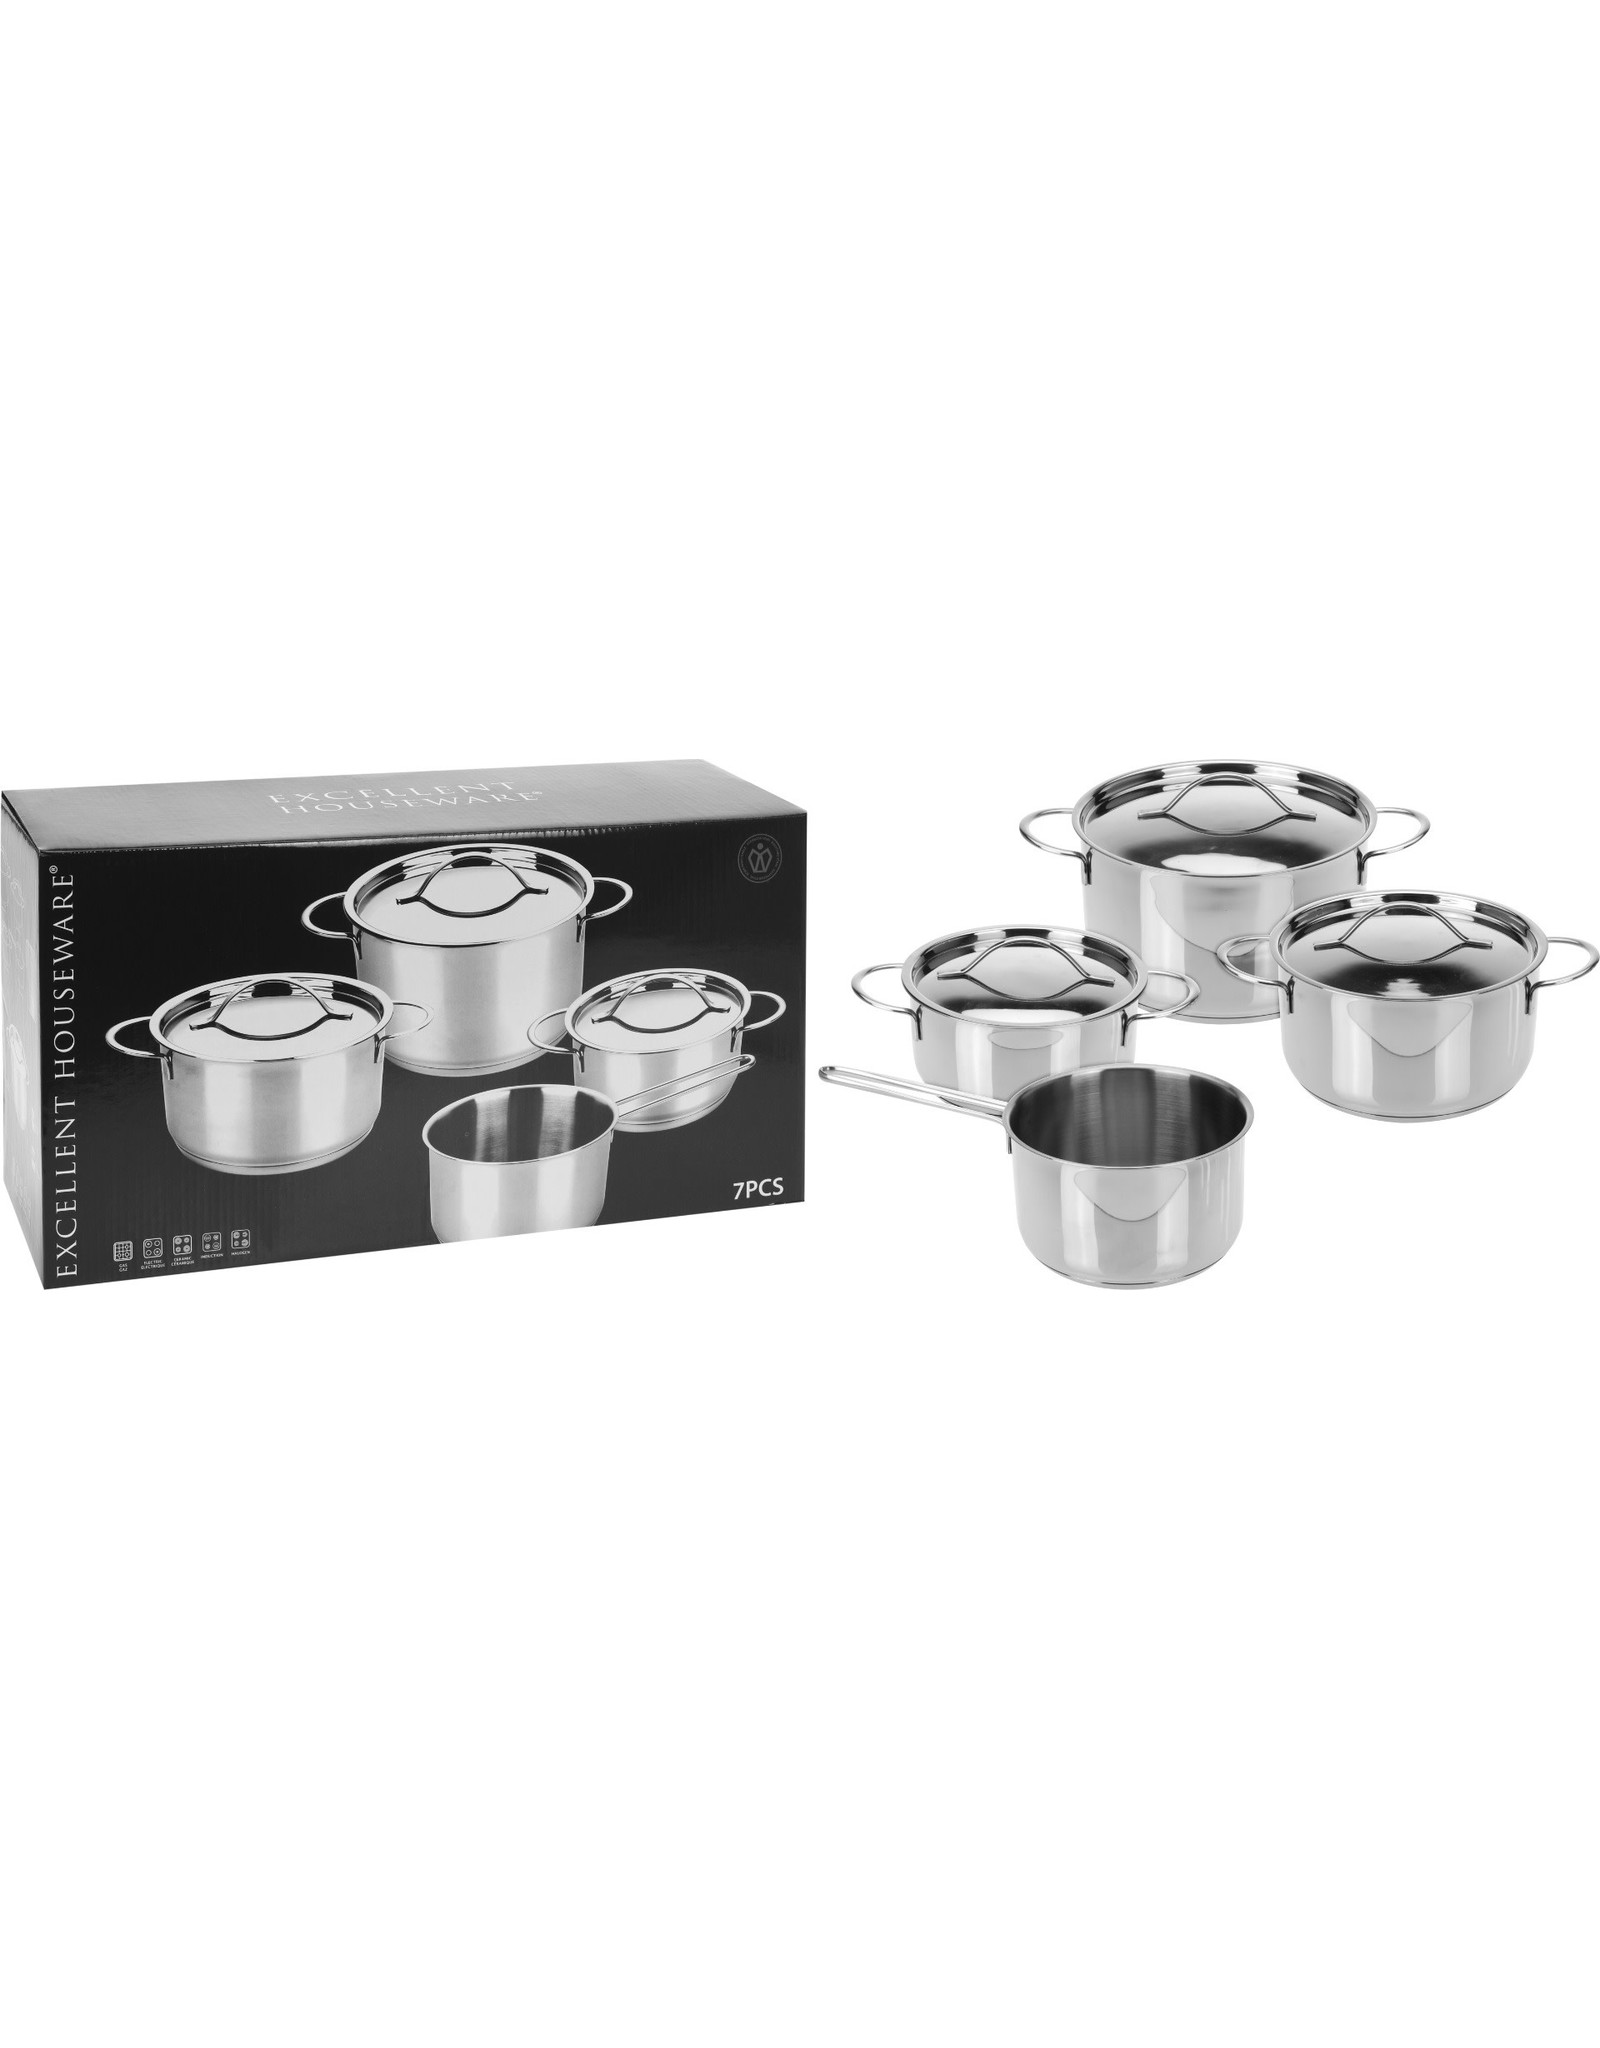 Cooking pans - Stainless - 7pcs